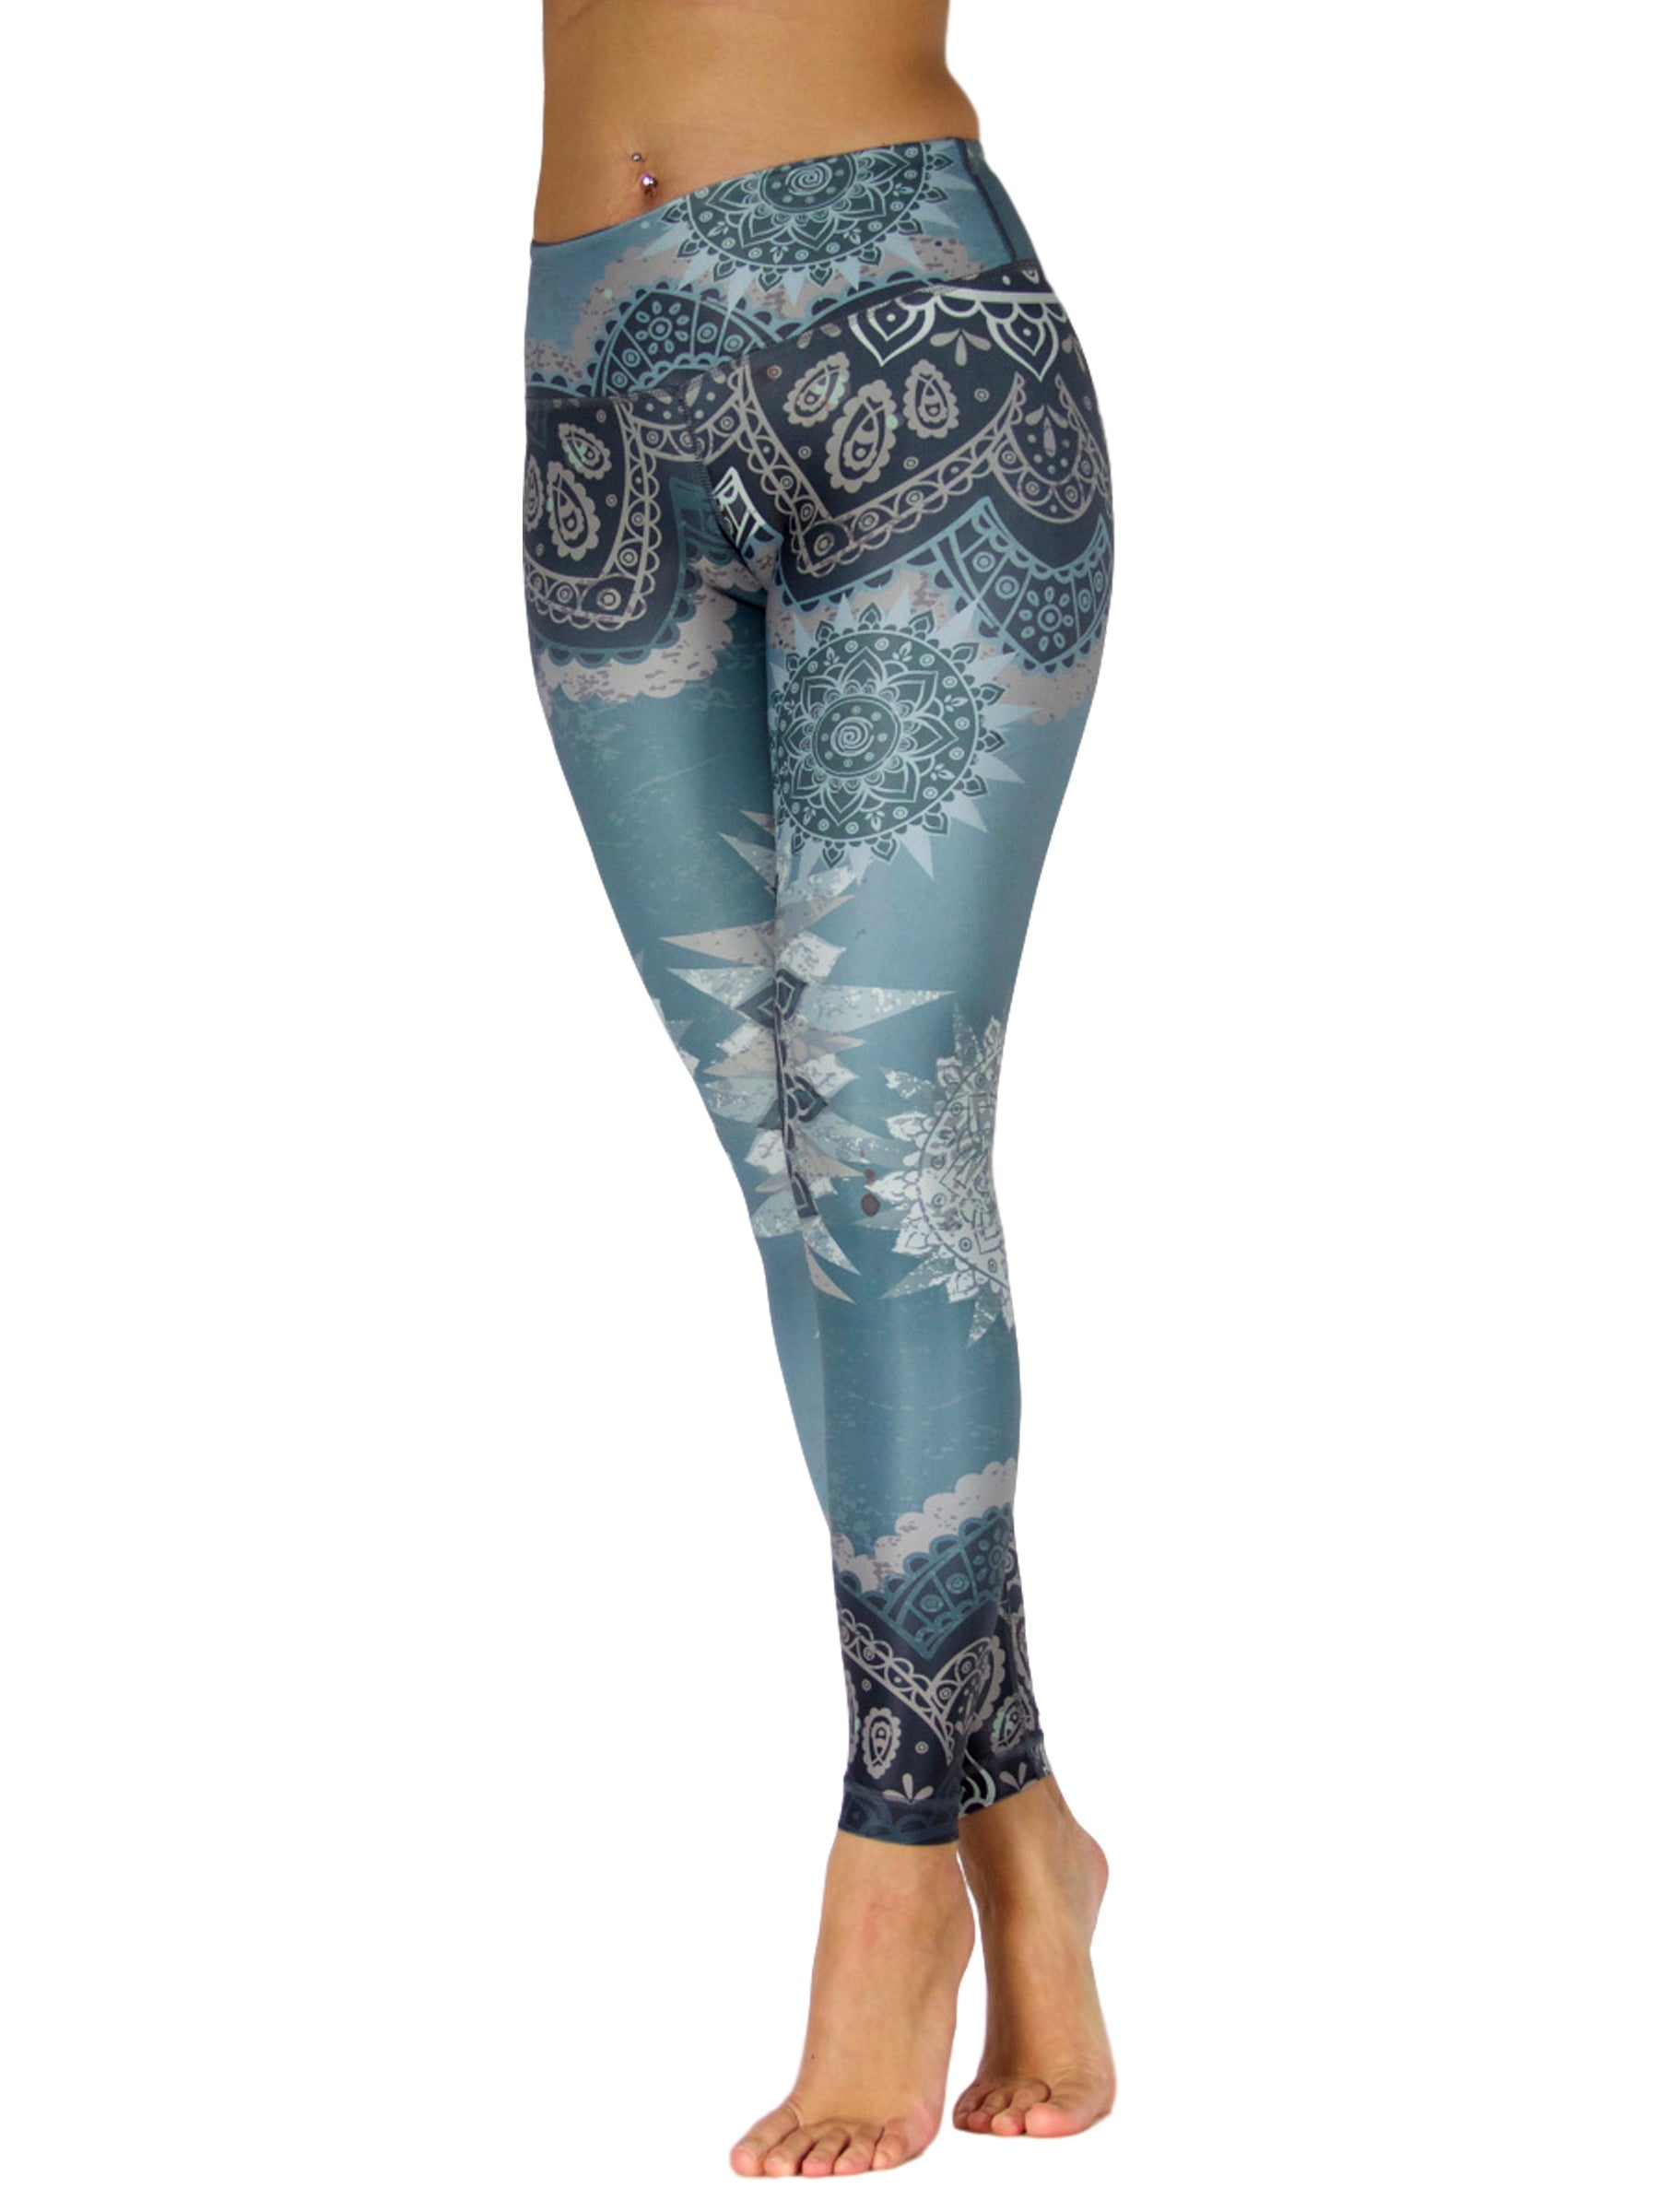 Dancing Beauty High Waist by Niyama - High Quality, Yoga Legging for Movement Artists.